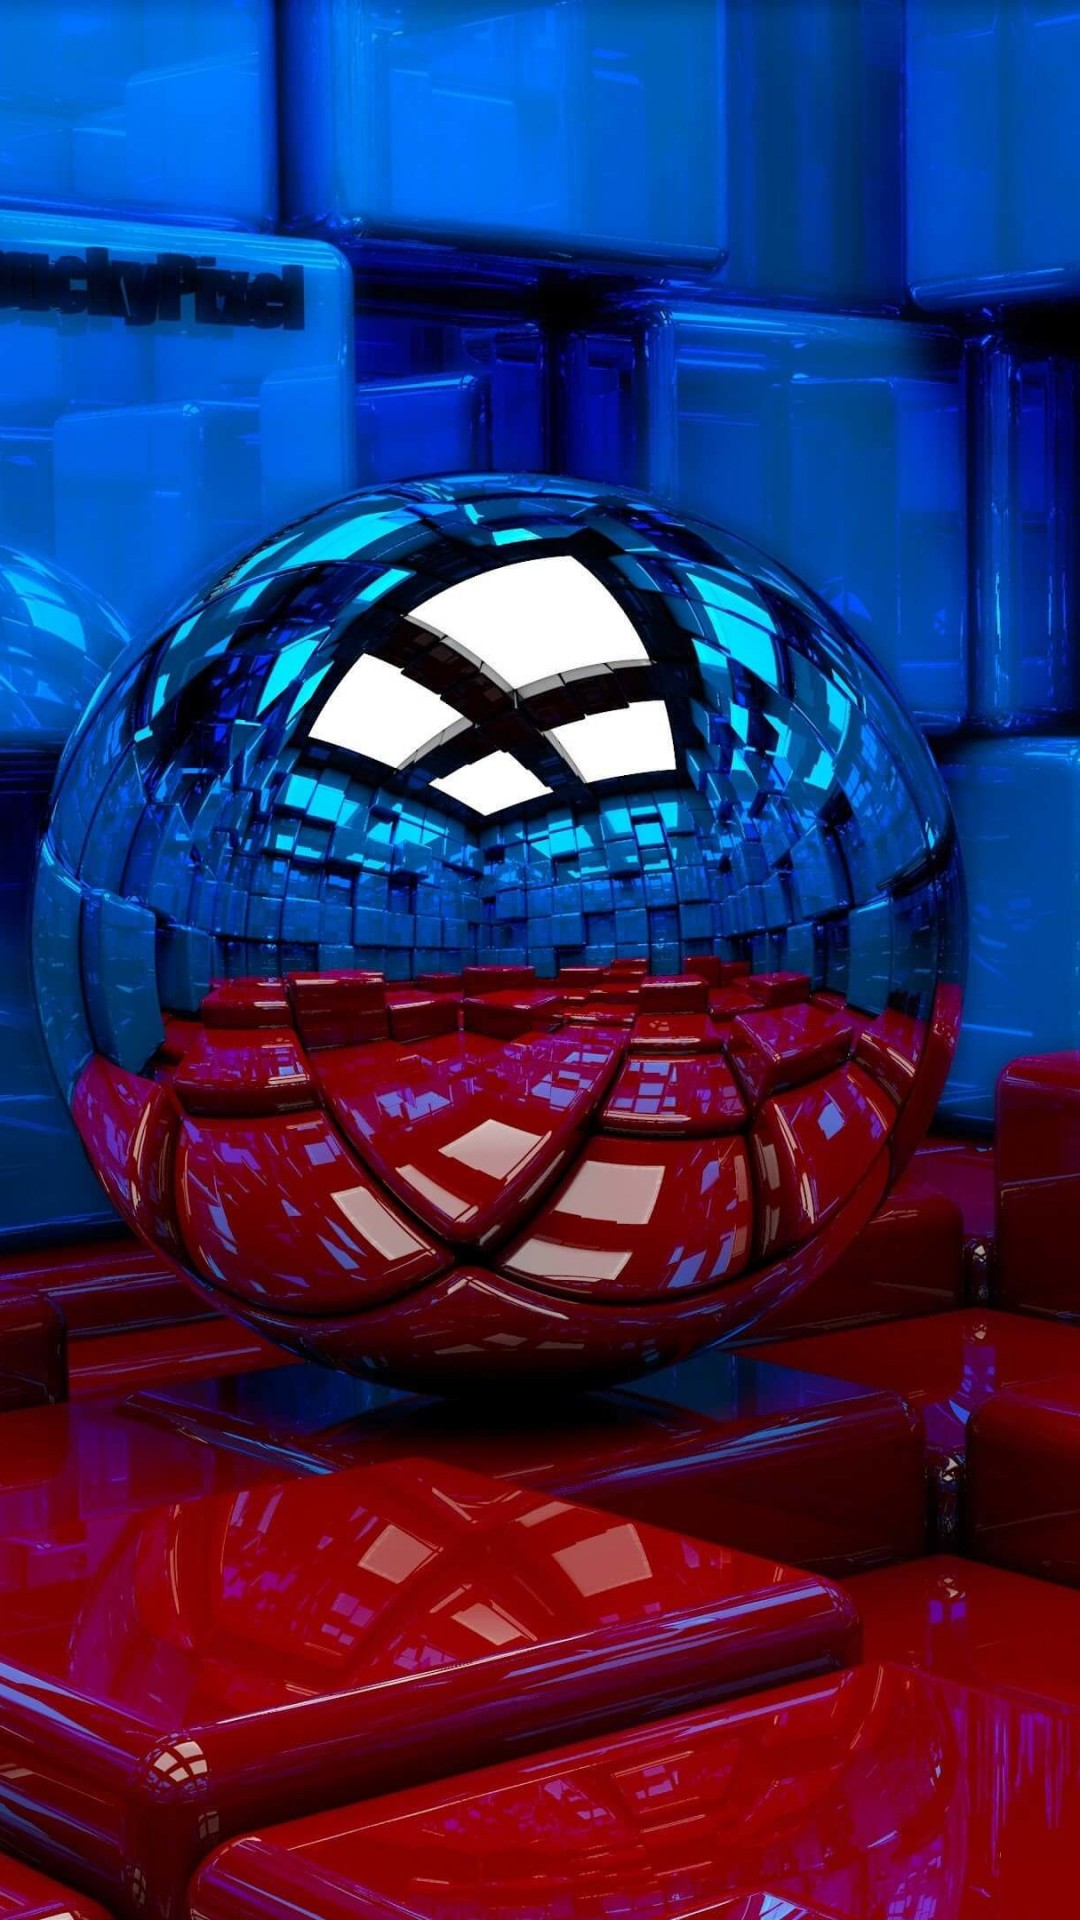 Metallic Sphere Reflecting The Cube Room Wallpaper for SAMSUNG Galaxy S4